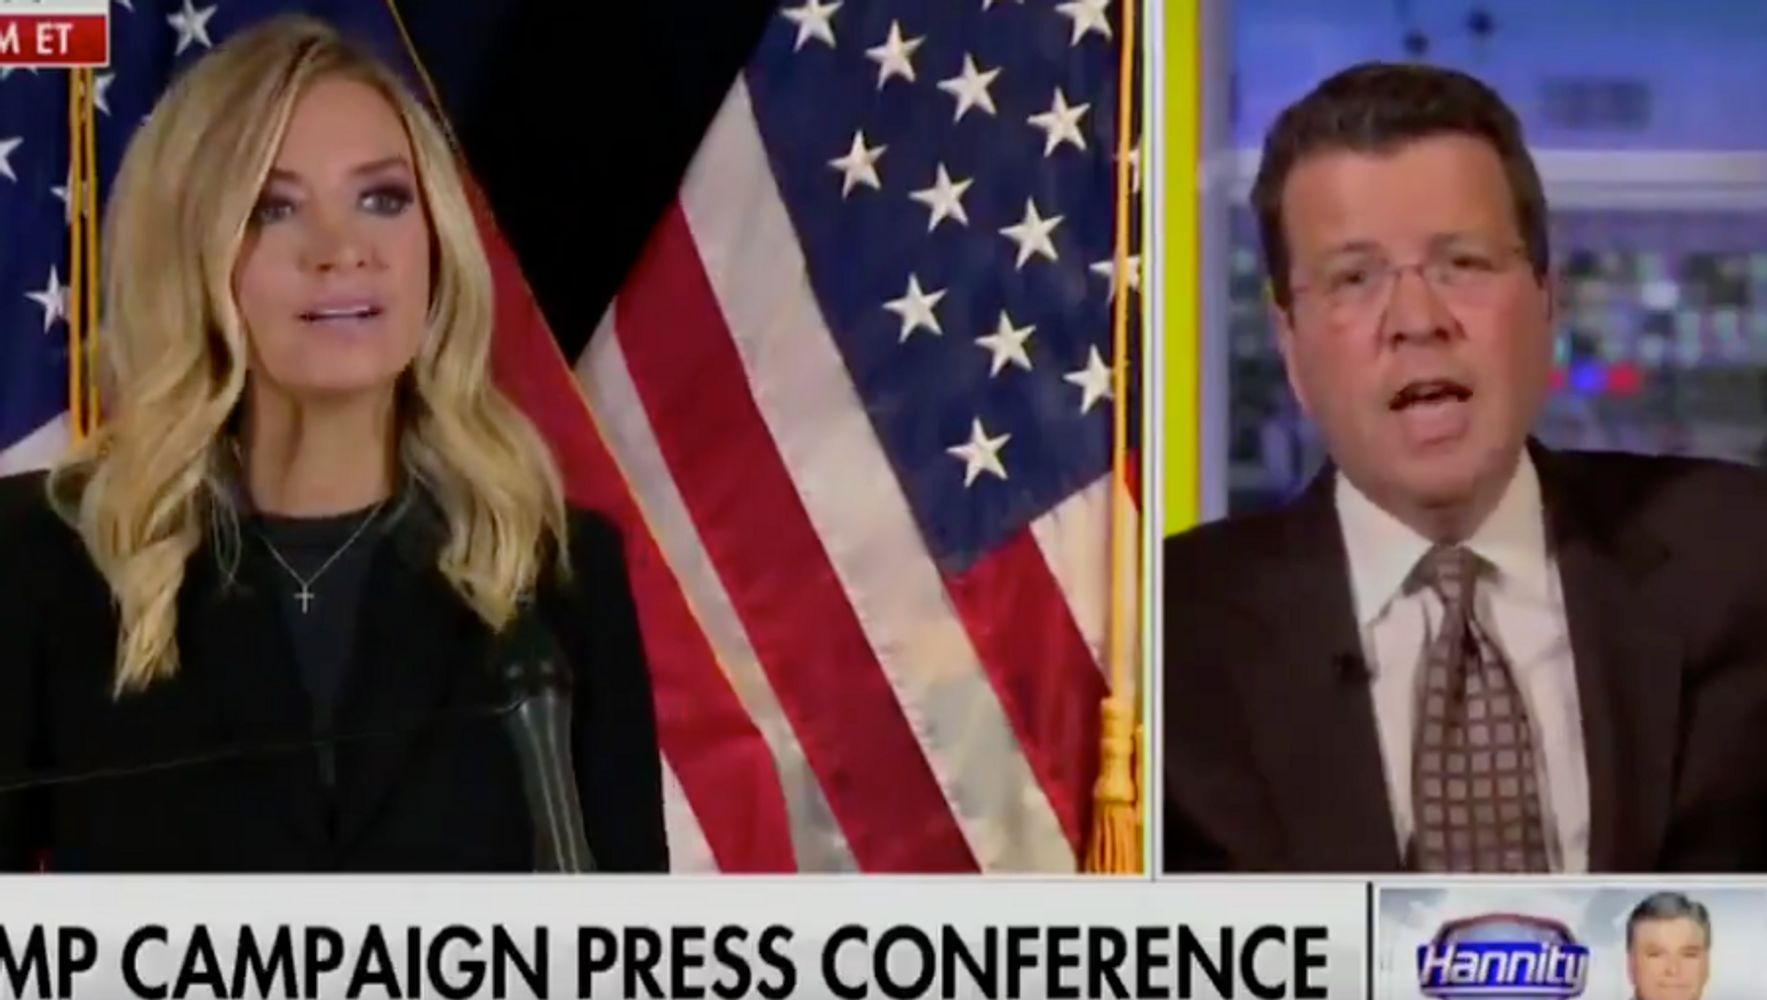 Fox News Cuts Away From Trump Campaign's Election Misinformation: 'Not So Fast'